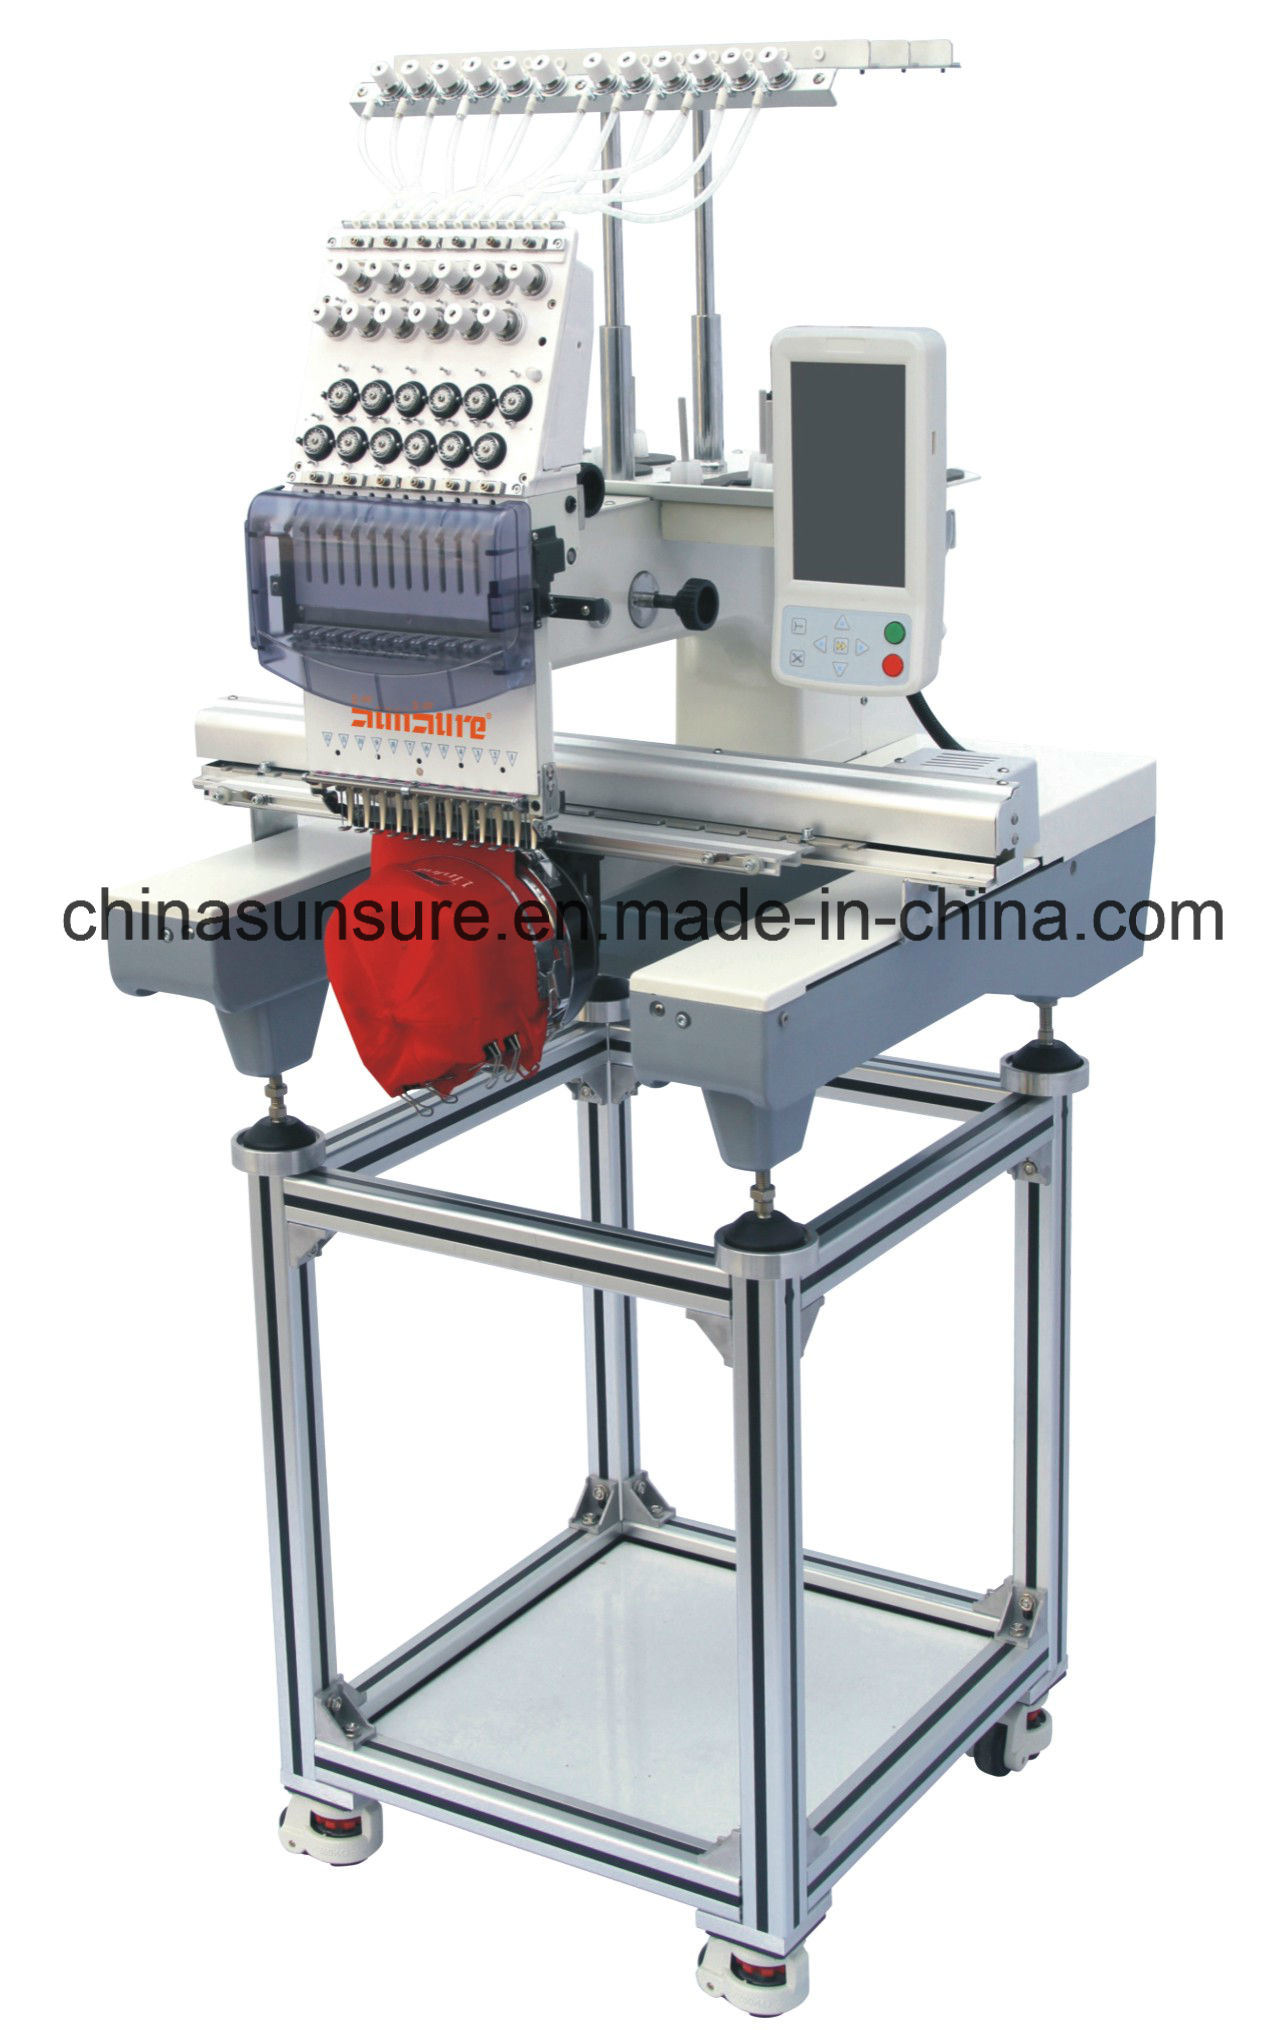 Single Head Embroidery Machine for T-Shirt